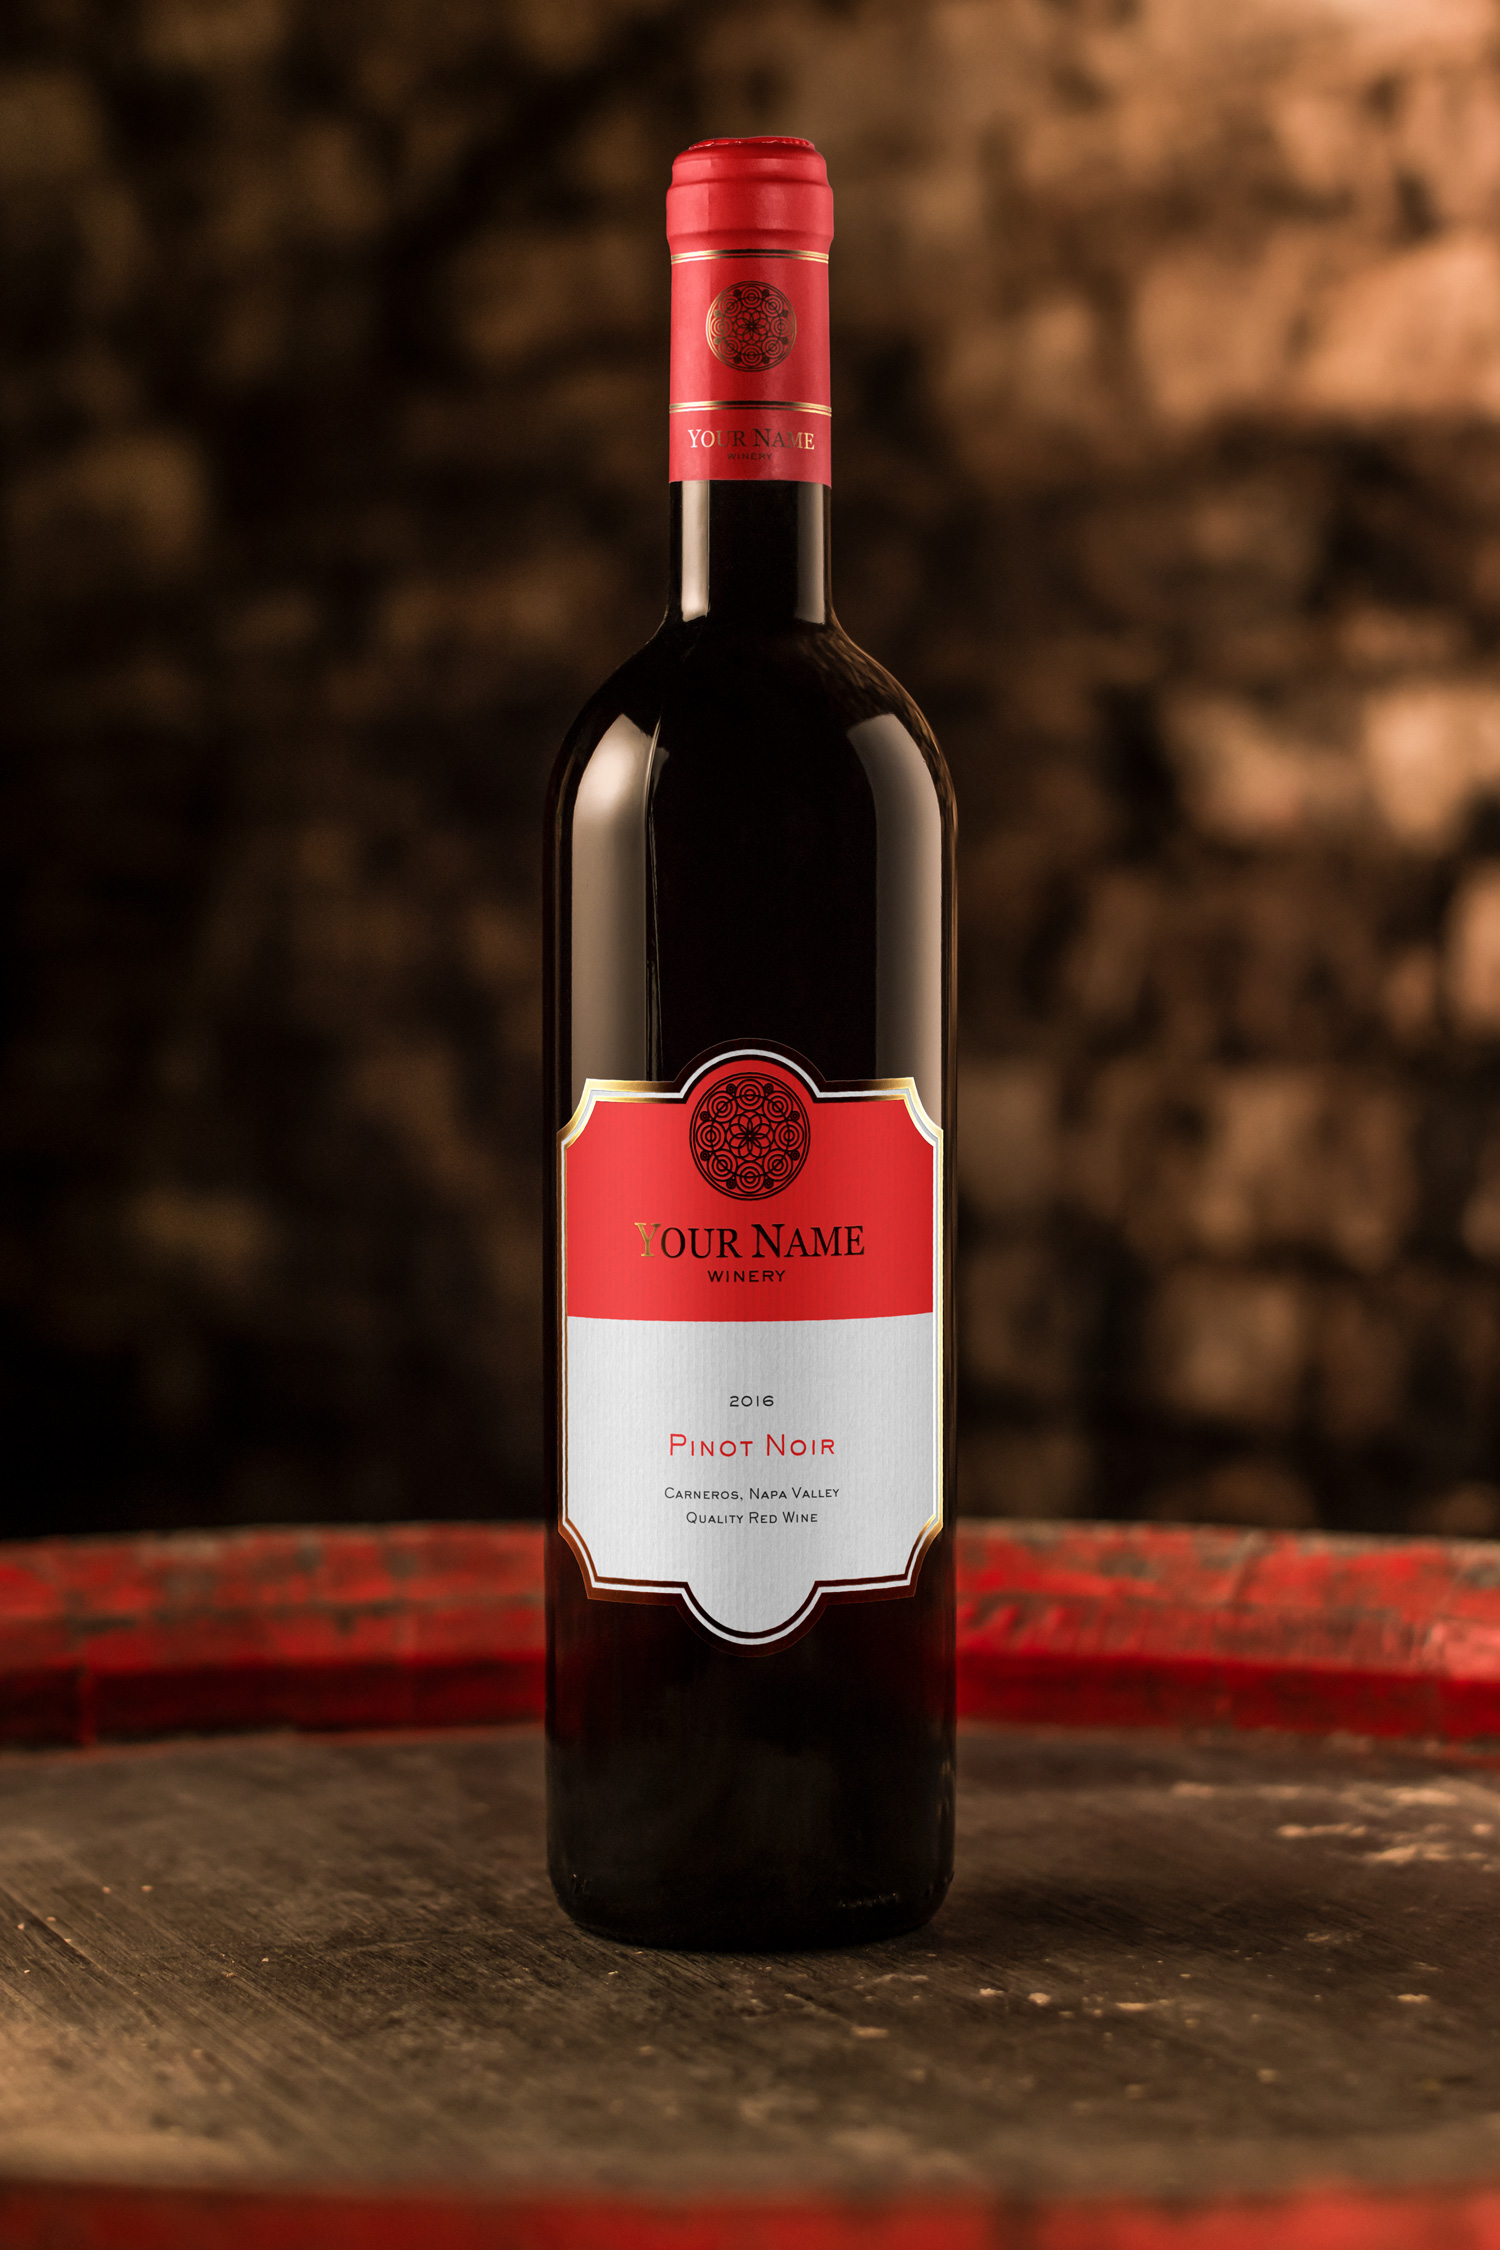 Free-Red-Wine-Bottle-Mockup-Set-02